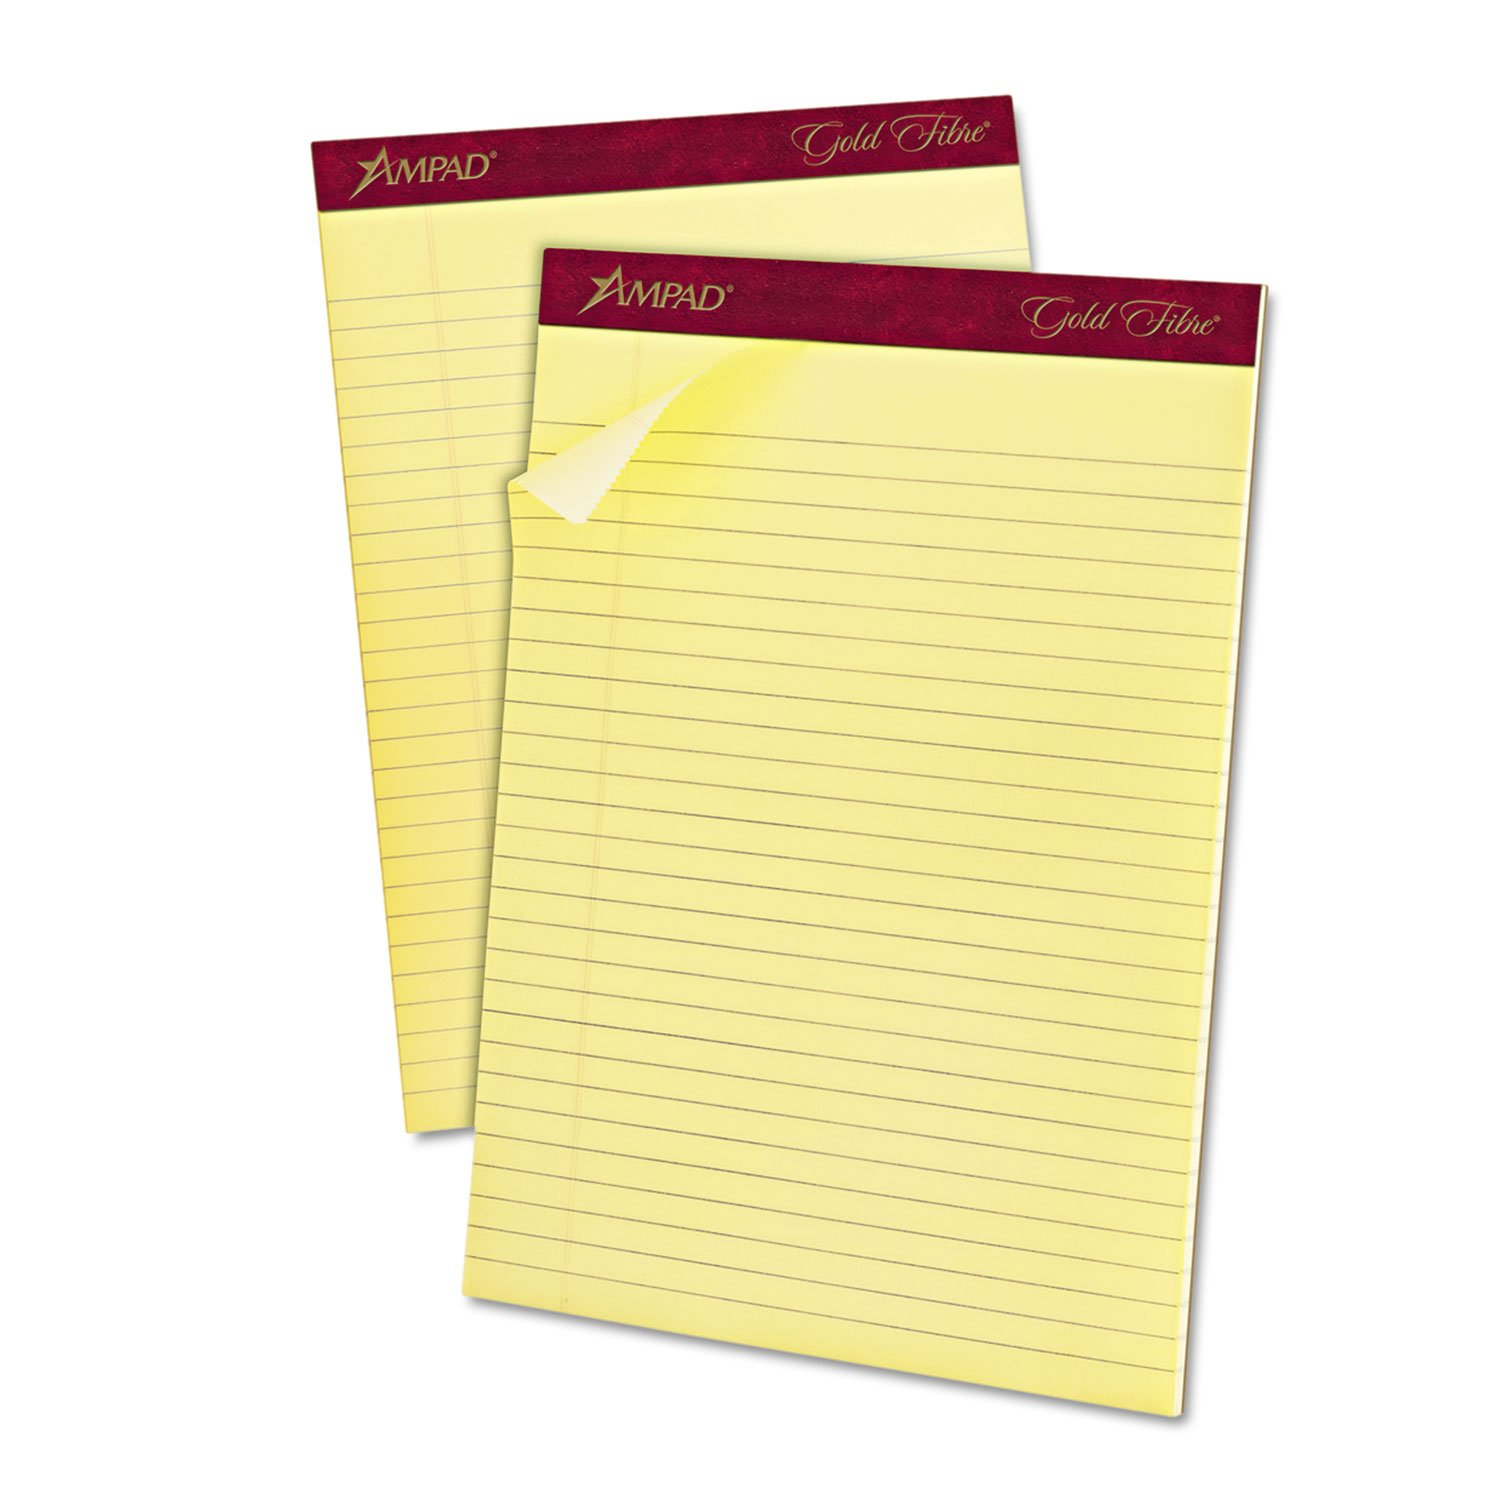 Ampad Gold Fibre Letter Size Perforated Pads, 8 1/2 x 11 3/4 Inches, Legal Ruling, Canary Paper, 50 Sheets Per Pad, 12 Pack (20-020)